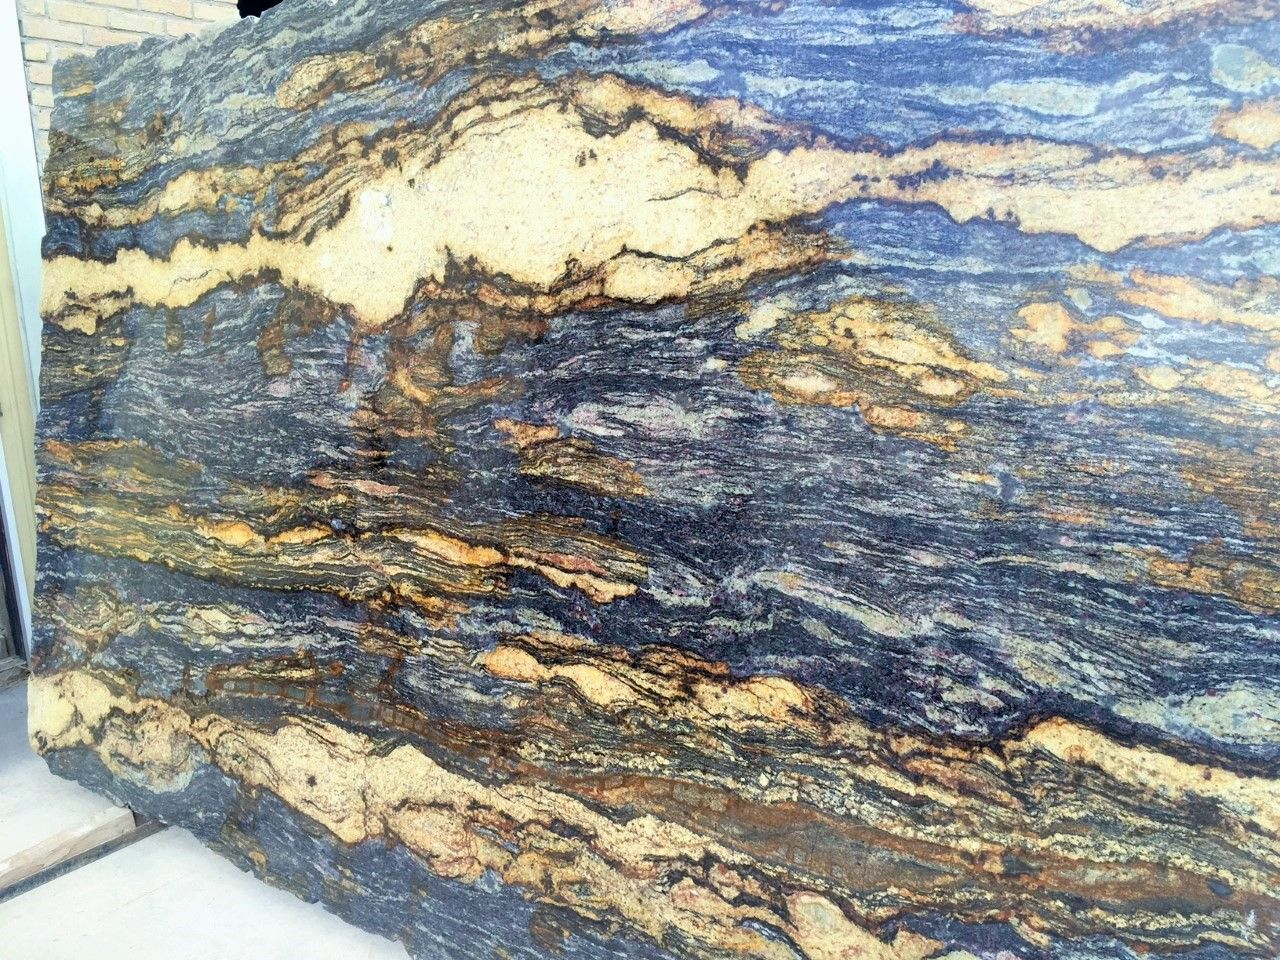 Sublime Custom Stone Sells And Installs Granite Countertops, Quartz  Products, Marble, Limestone And Many Other Fine Materials Throughout The San  Antonio ...